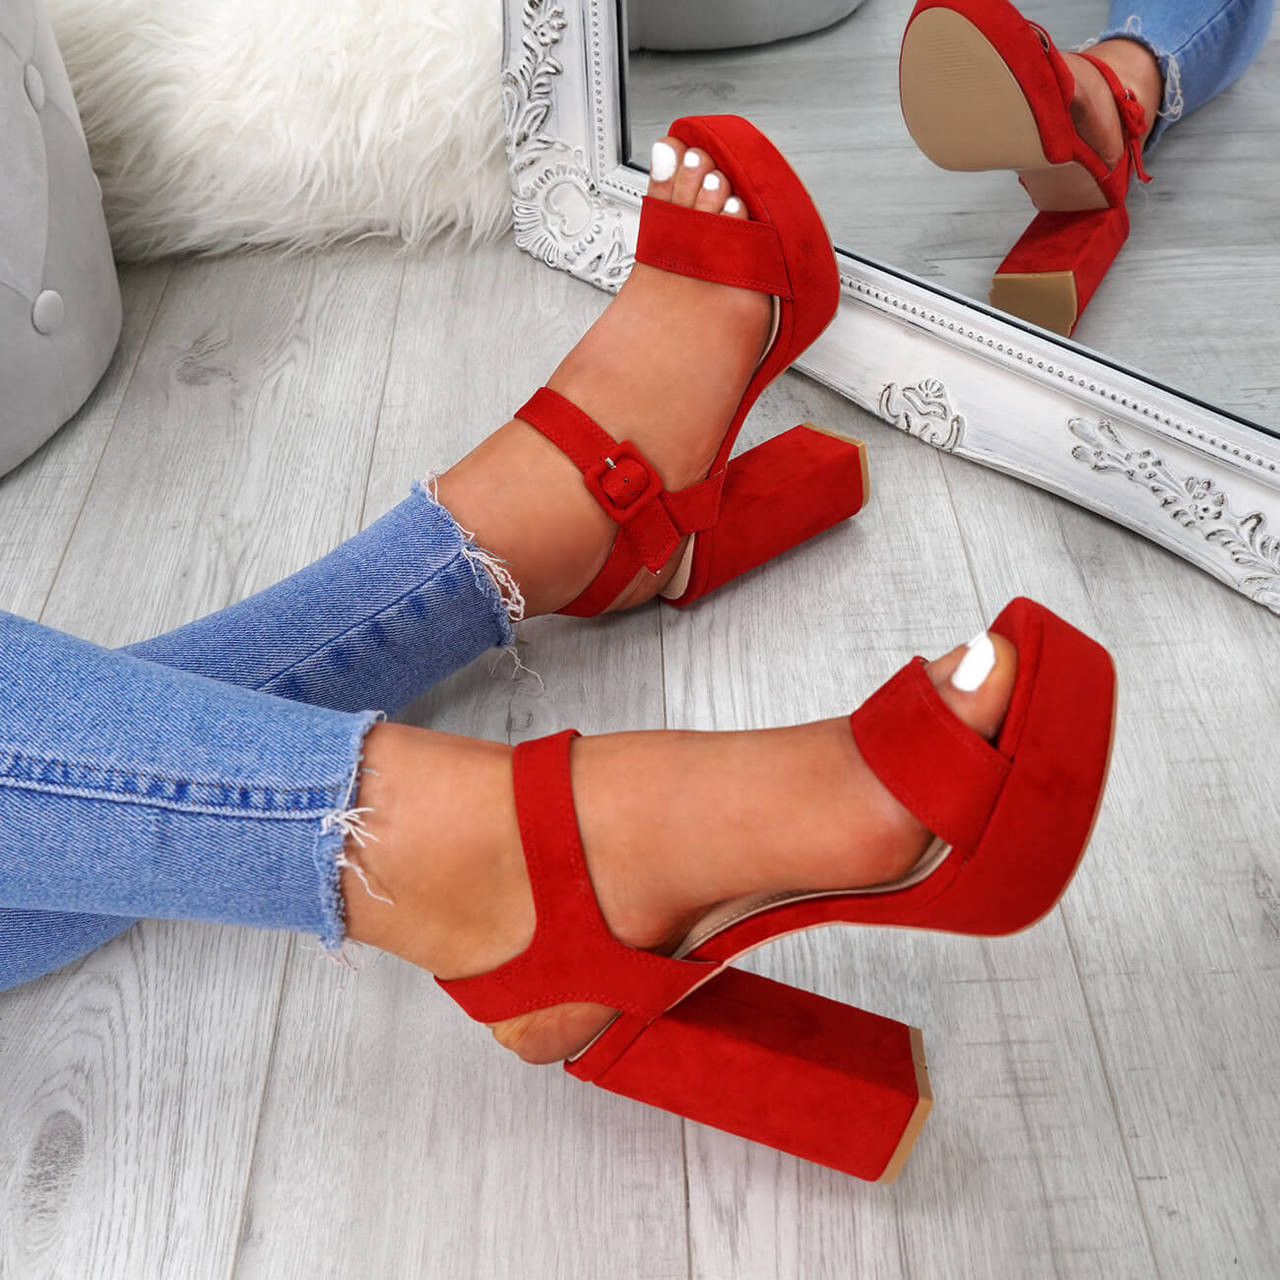 6af35b69de7 Gilla Red Block Heel Sandals